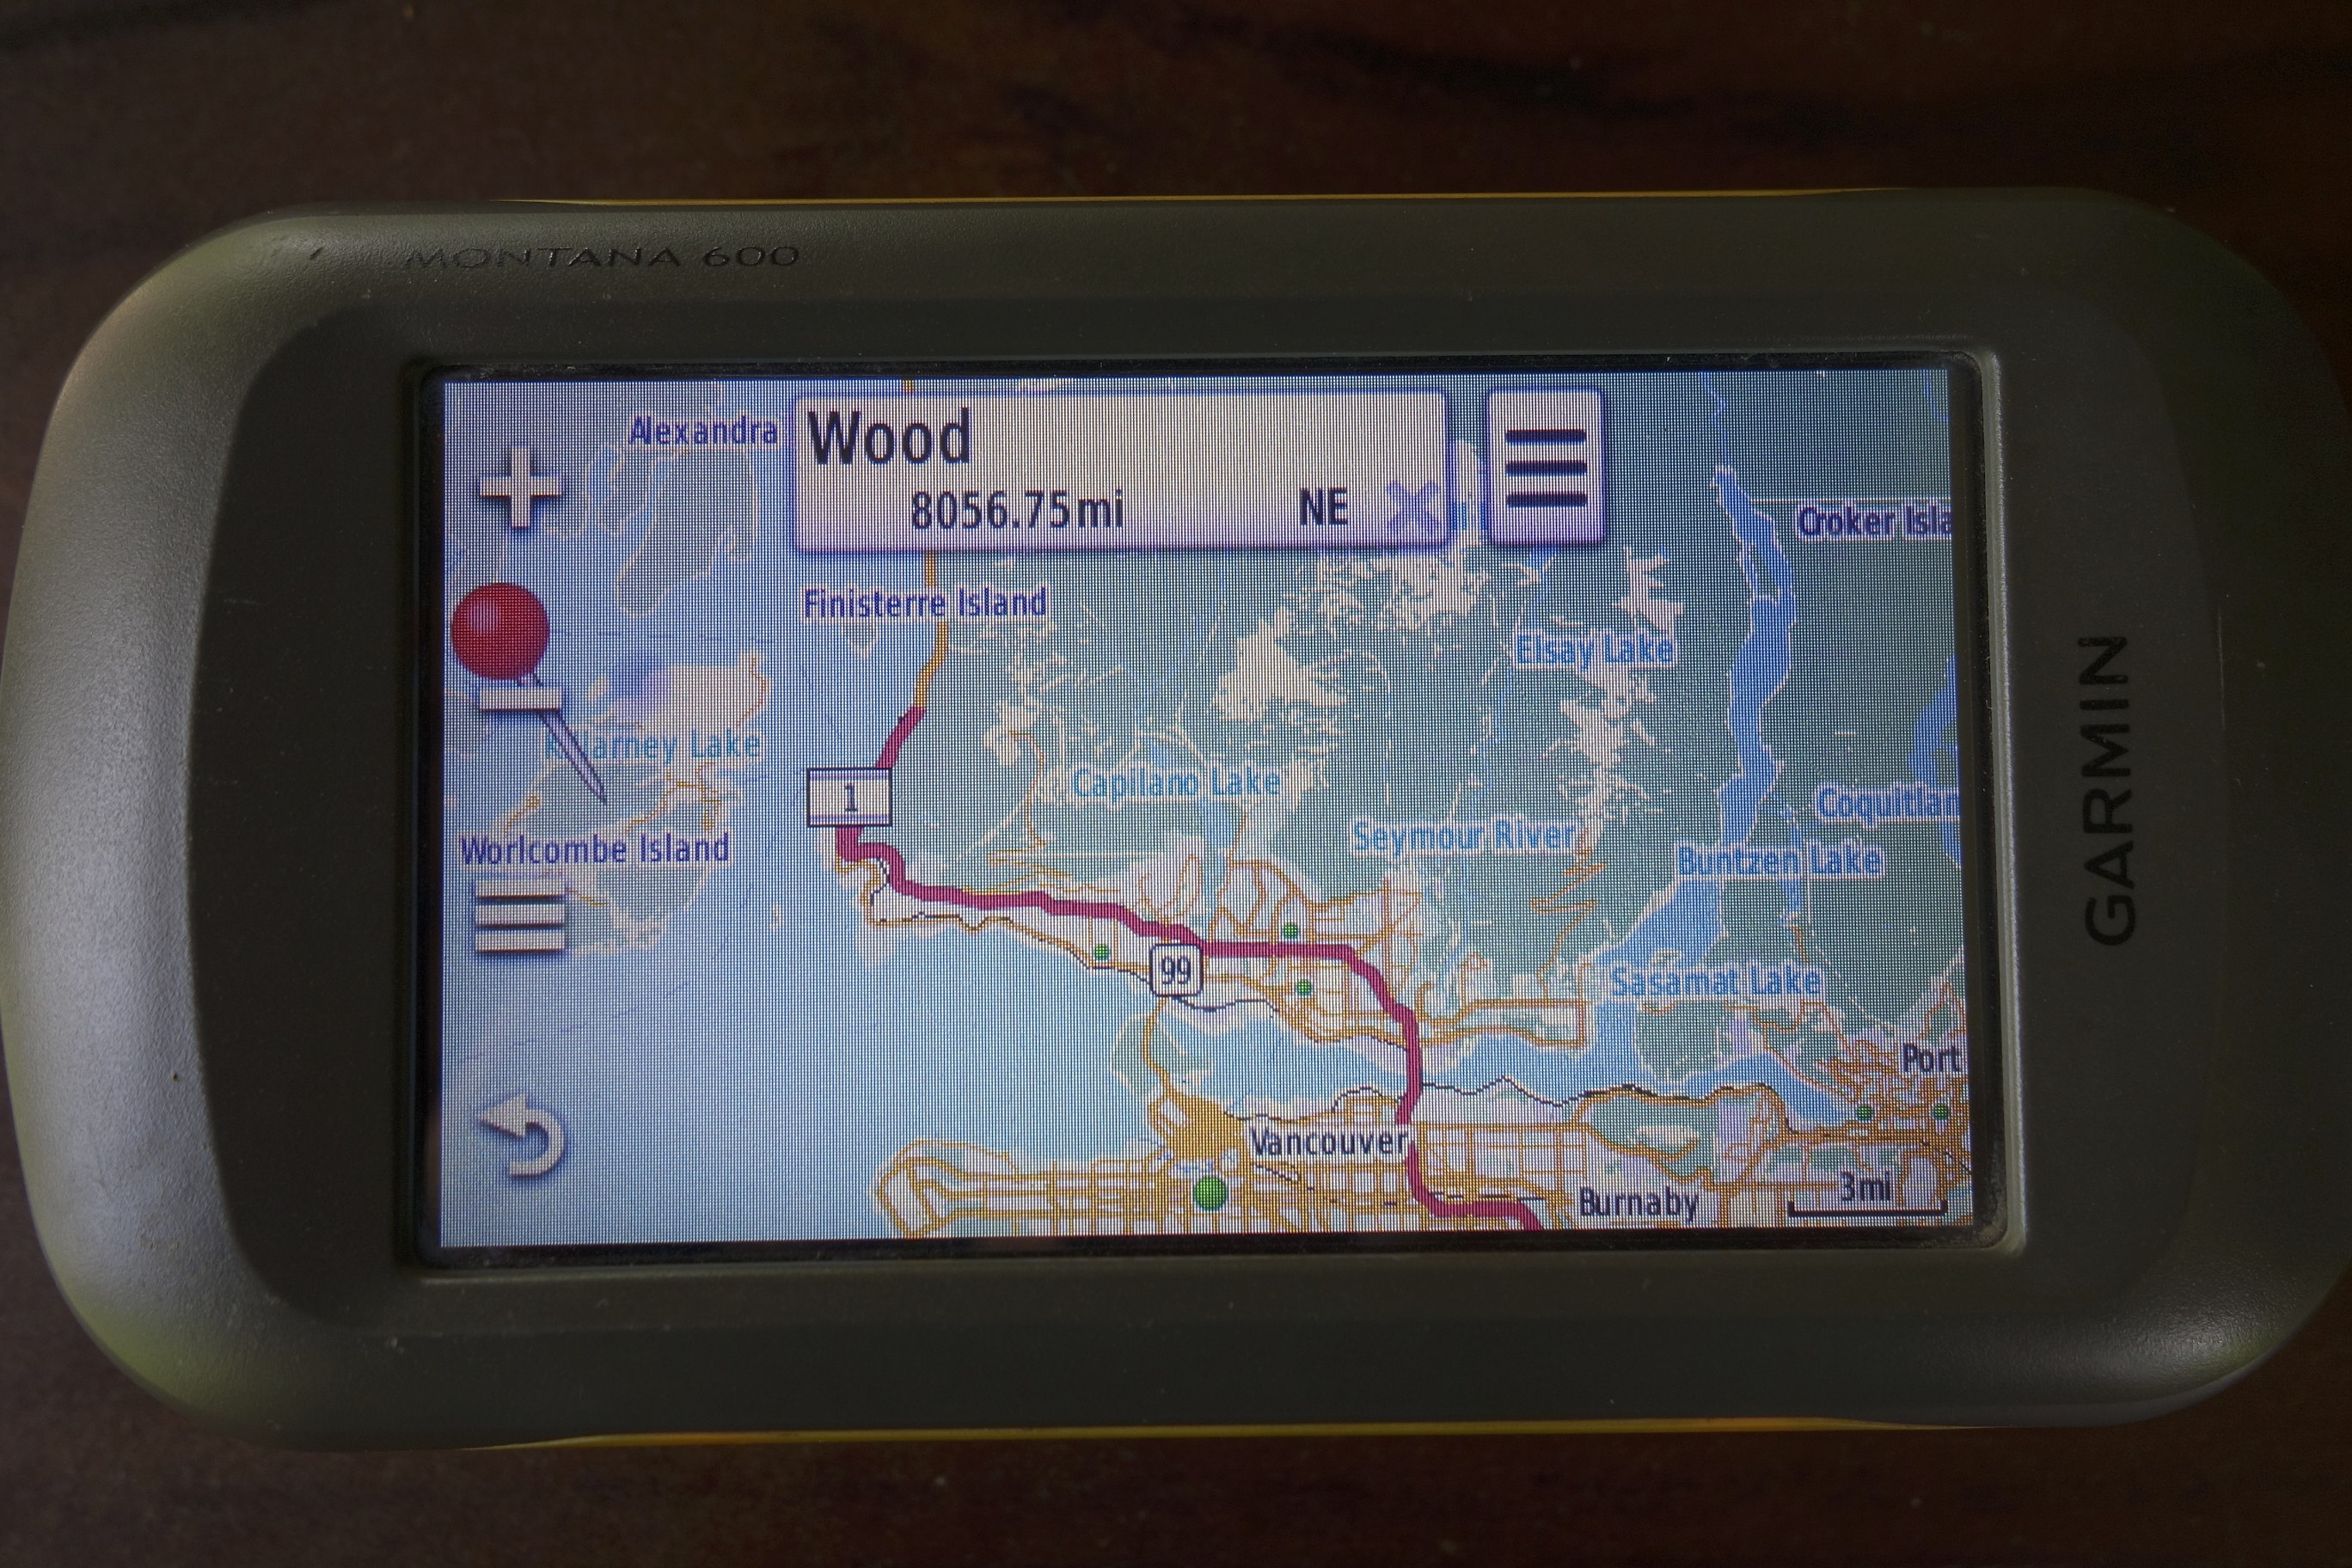 How to download free maps for a garmin gps step by step how to download free maps for a garmin gps step by step instructions gumiabroncs Image collections